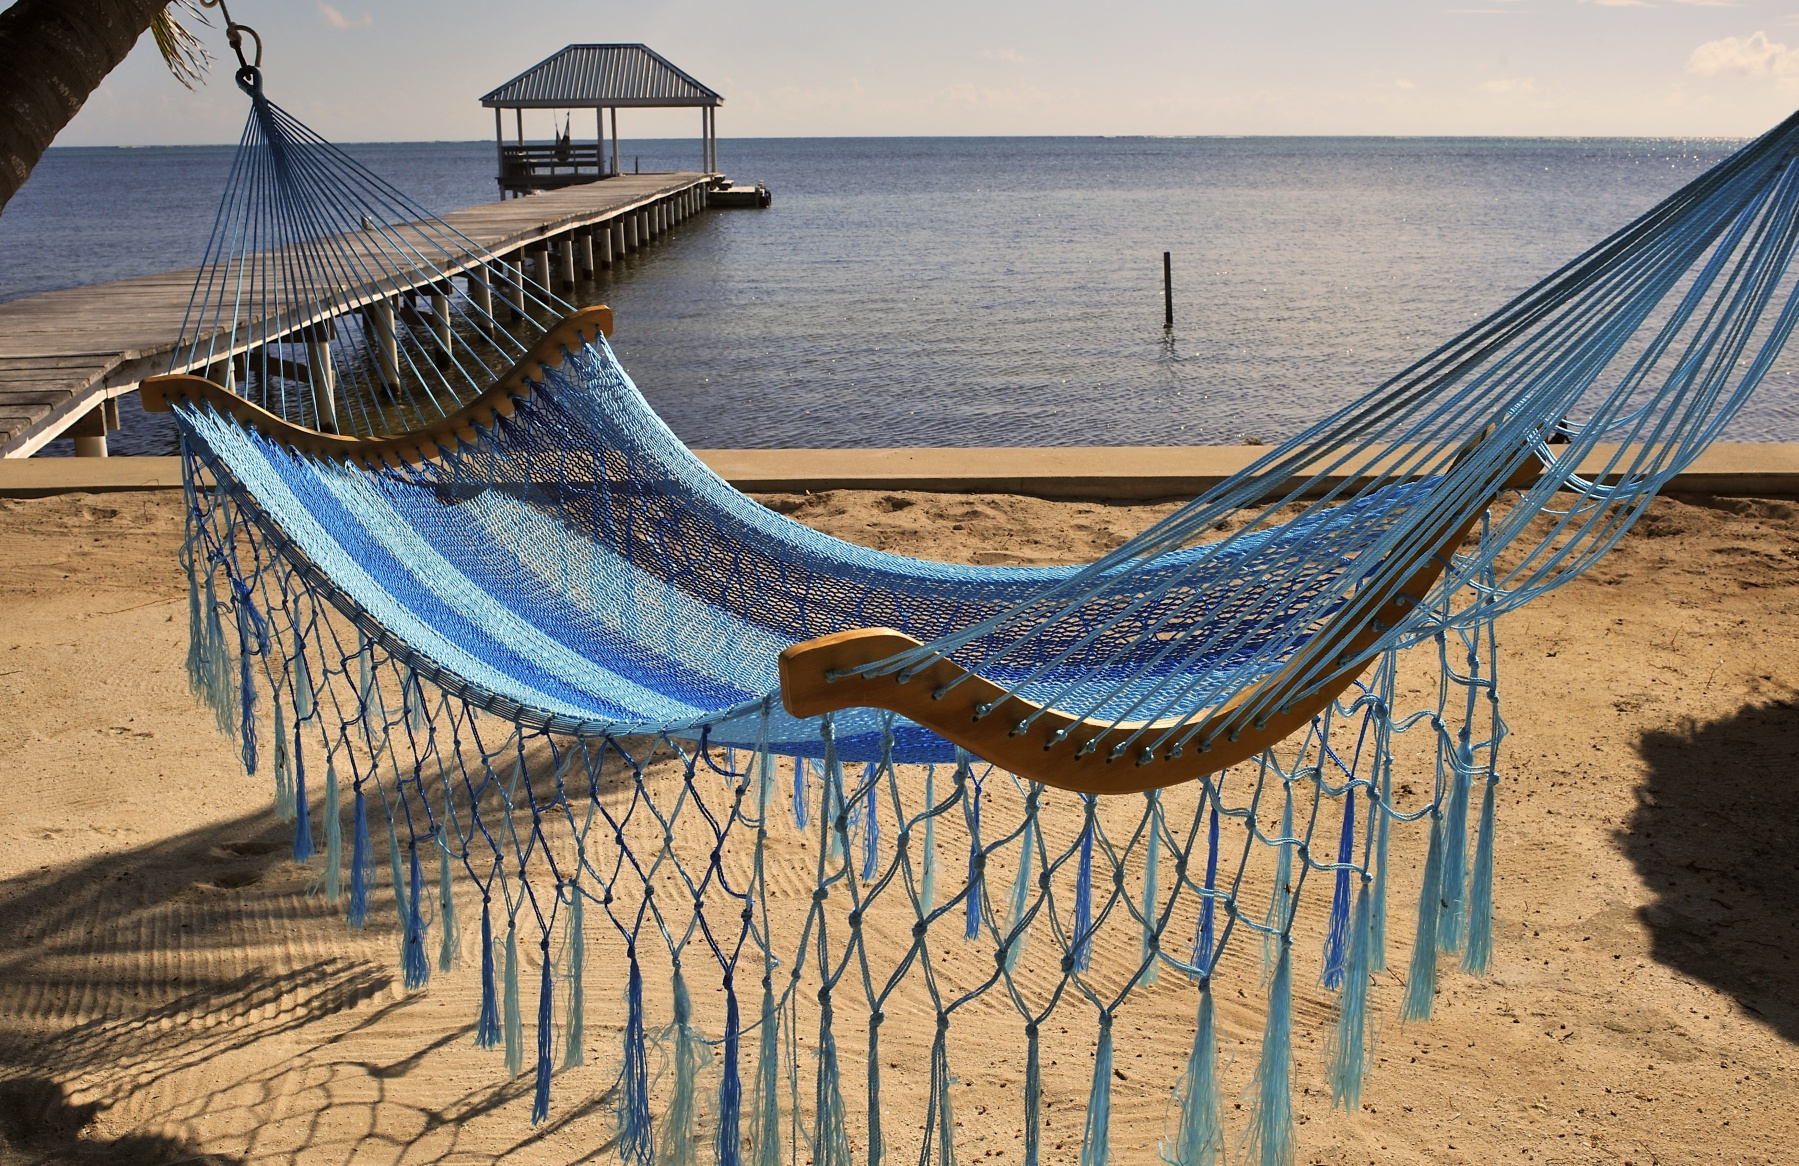 A view of a hammock on the beach on October 24, 2010 in the Island of Ambergris Caye, Belize, Central America.  hammock in carabbean islands, Ambergris Caye, Belize. (Photo by Philippe ROYER/Gamma-Rapho via Getty Images)